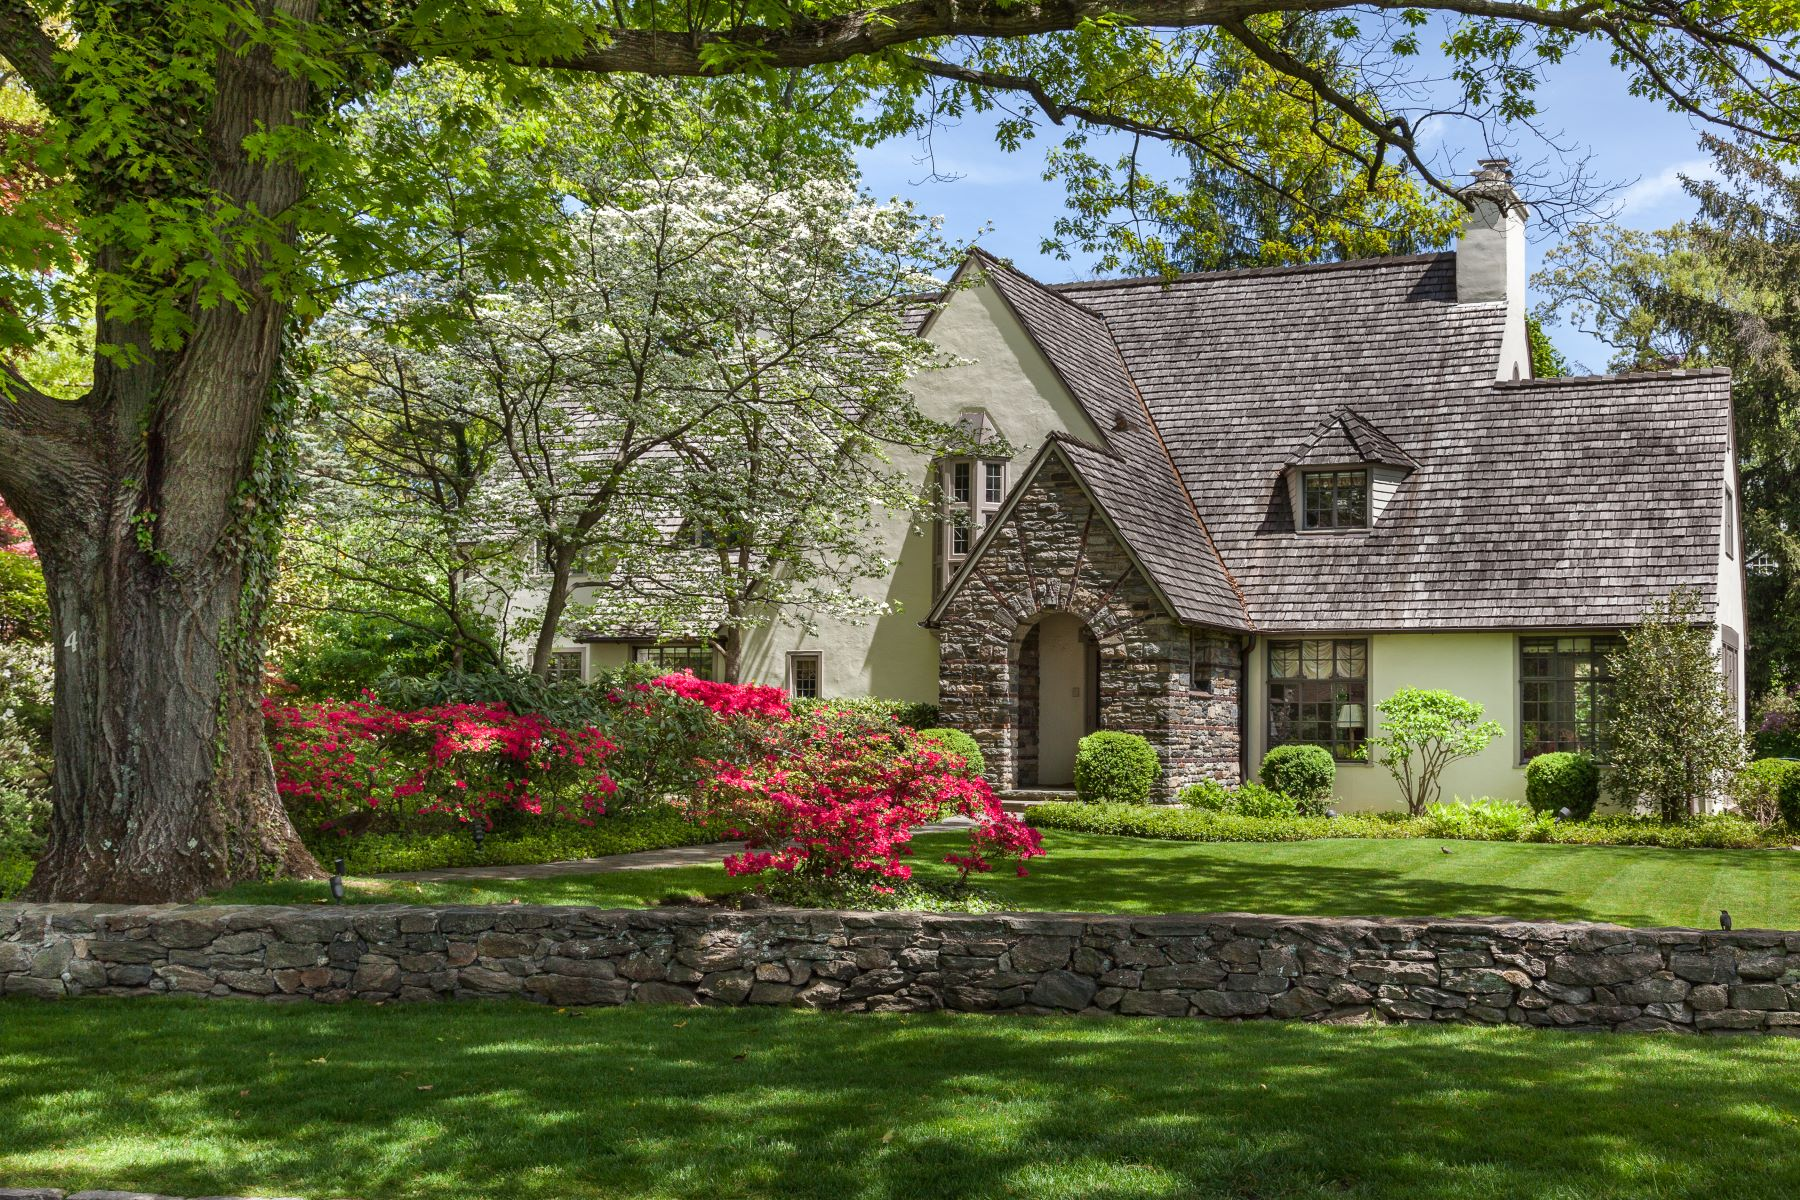 Single Family Homes for Sale at Welcome To 4 The High Road 4 The High Road Bronxville, New York 10708 United States